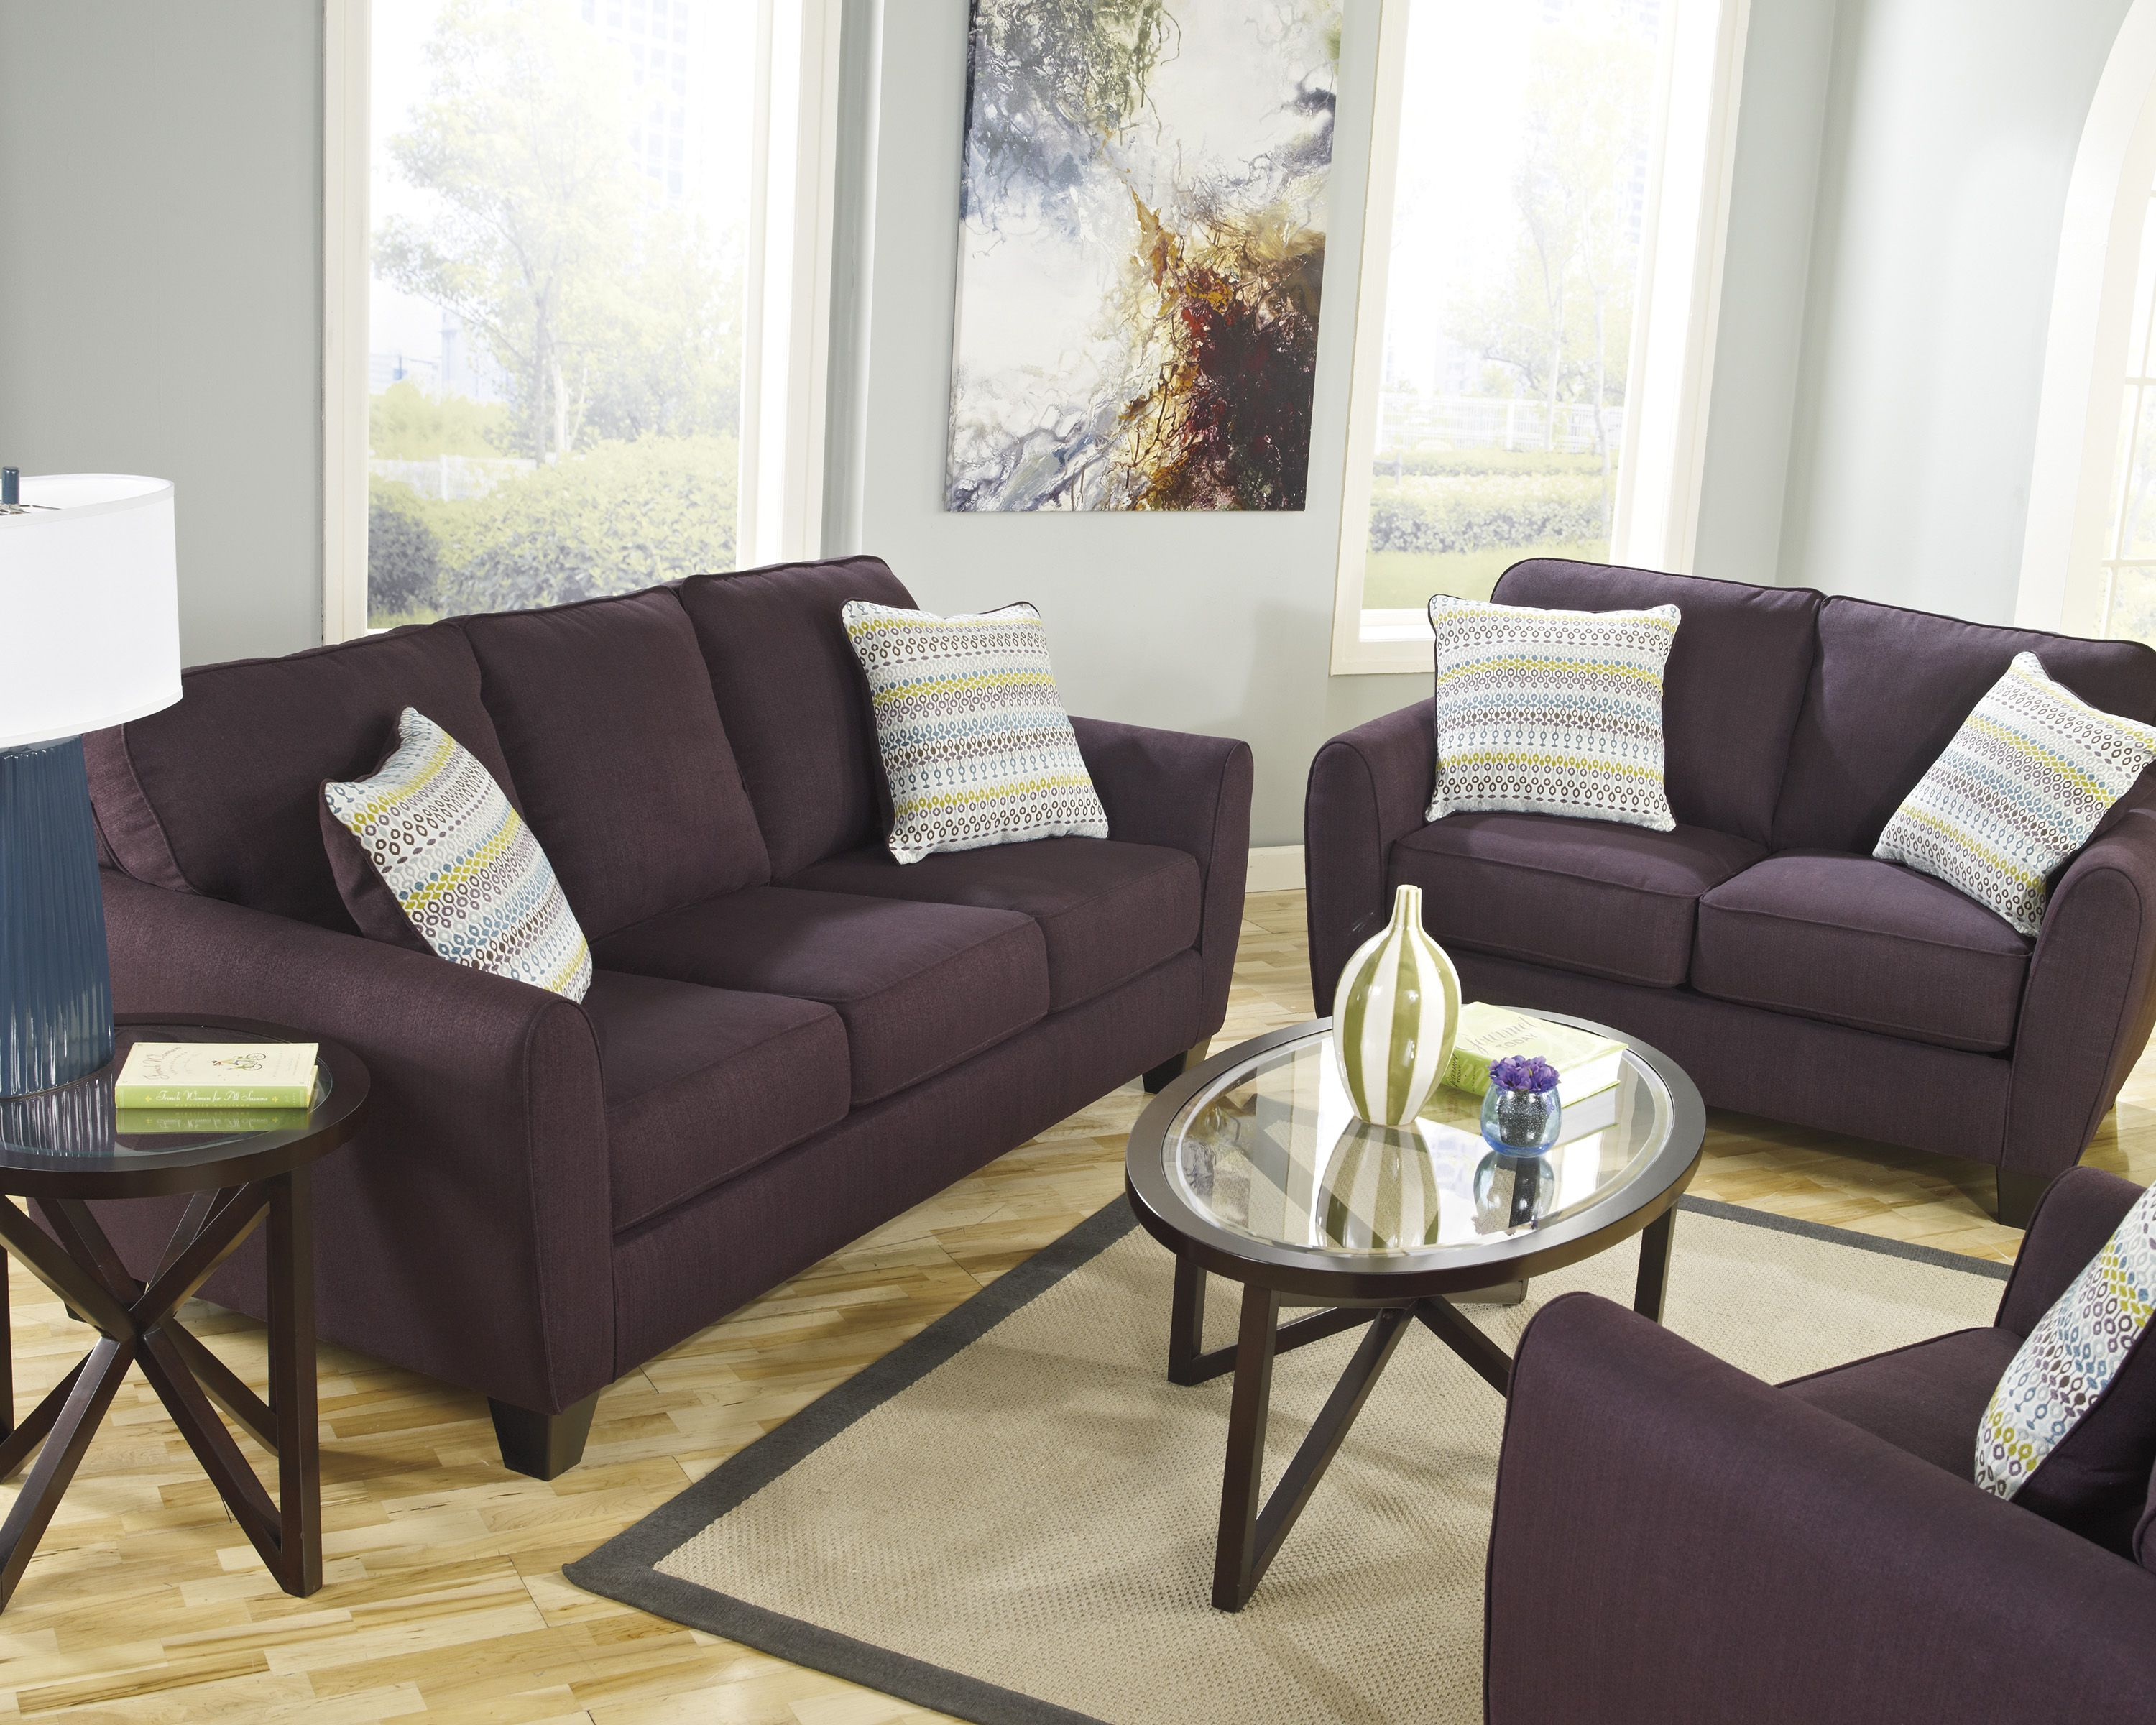 We Think An Eggplant Loveseat Is Just A Darling Addition To Any